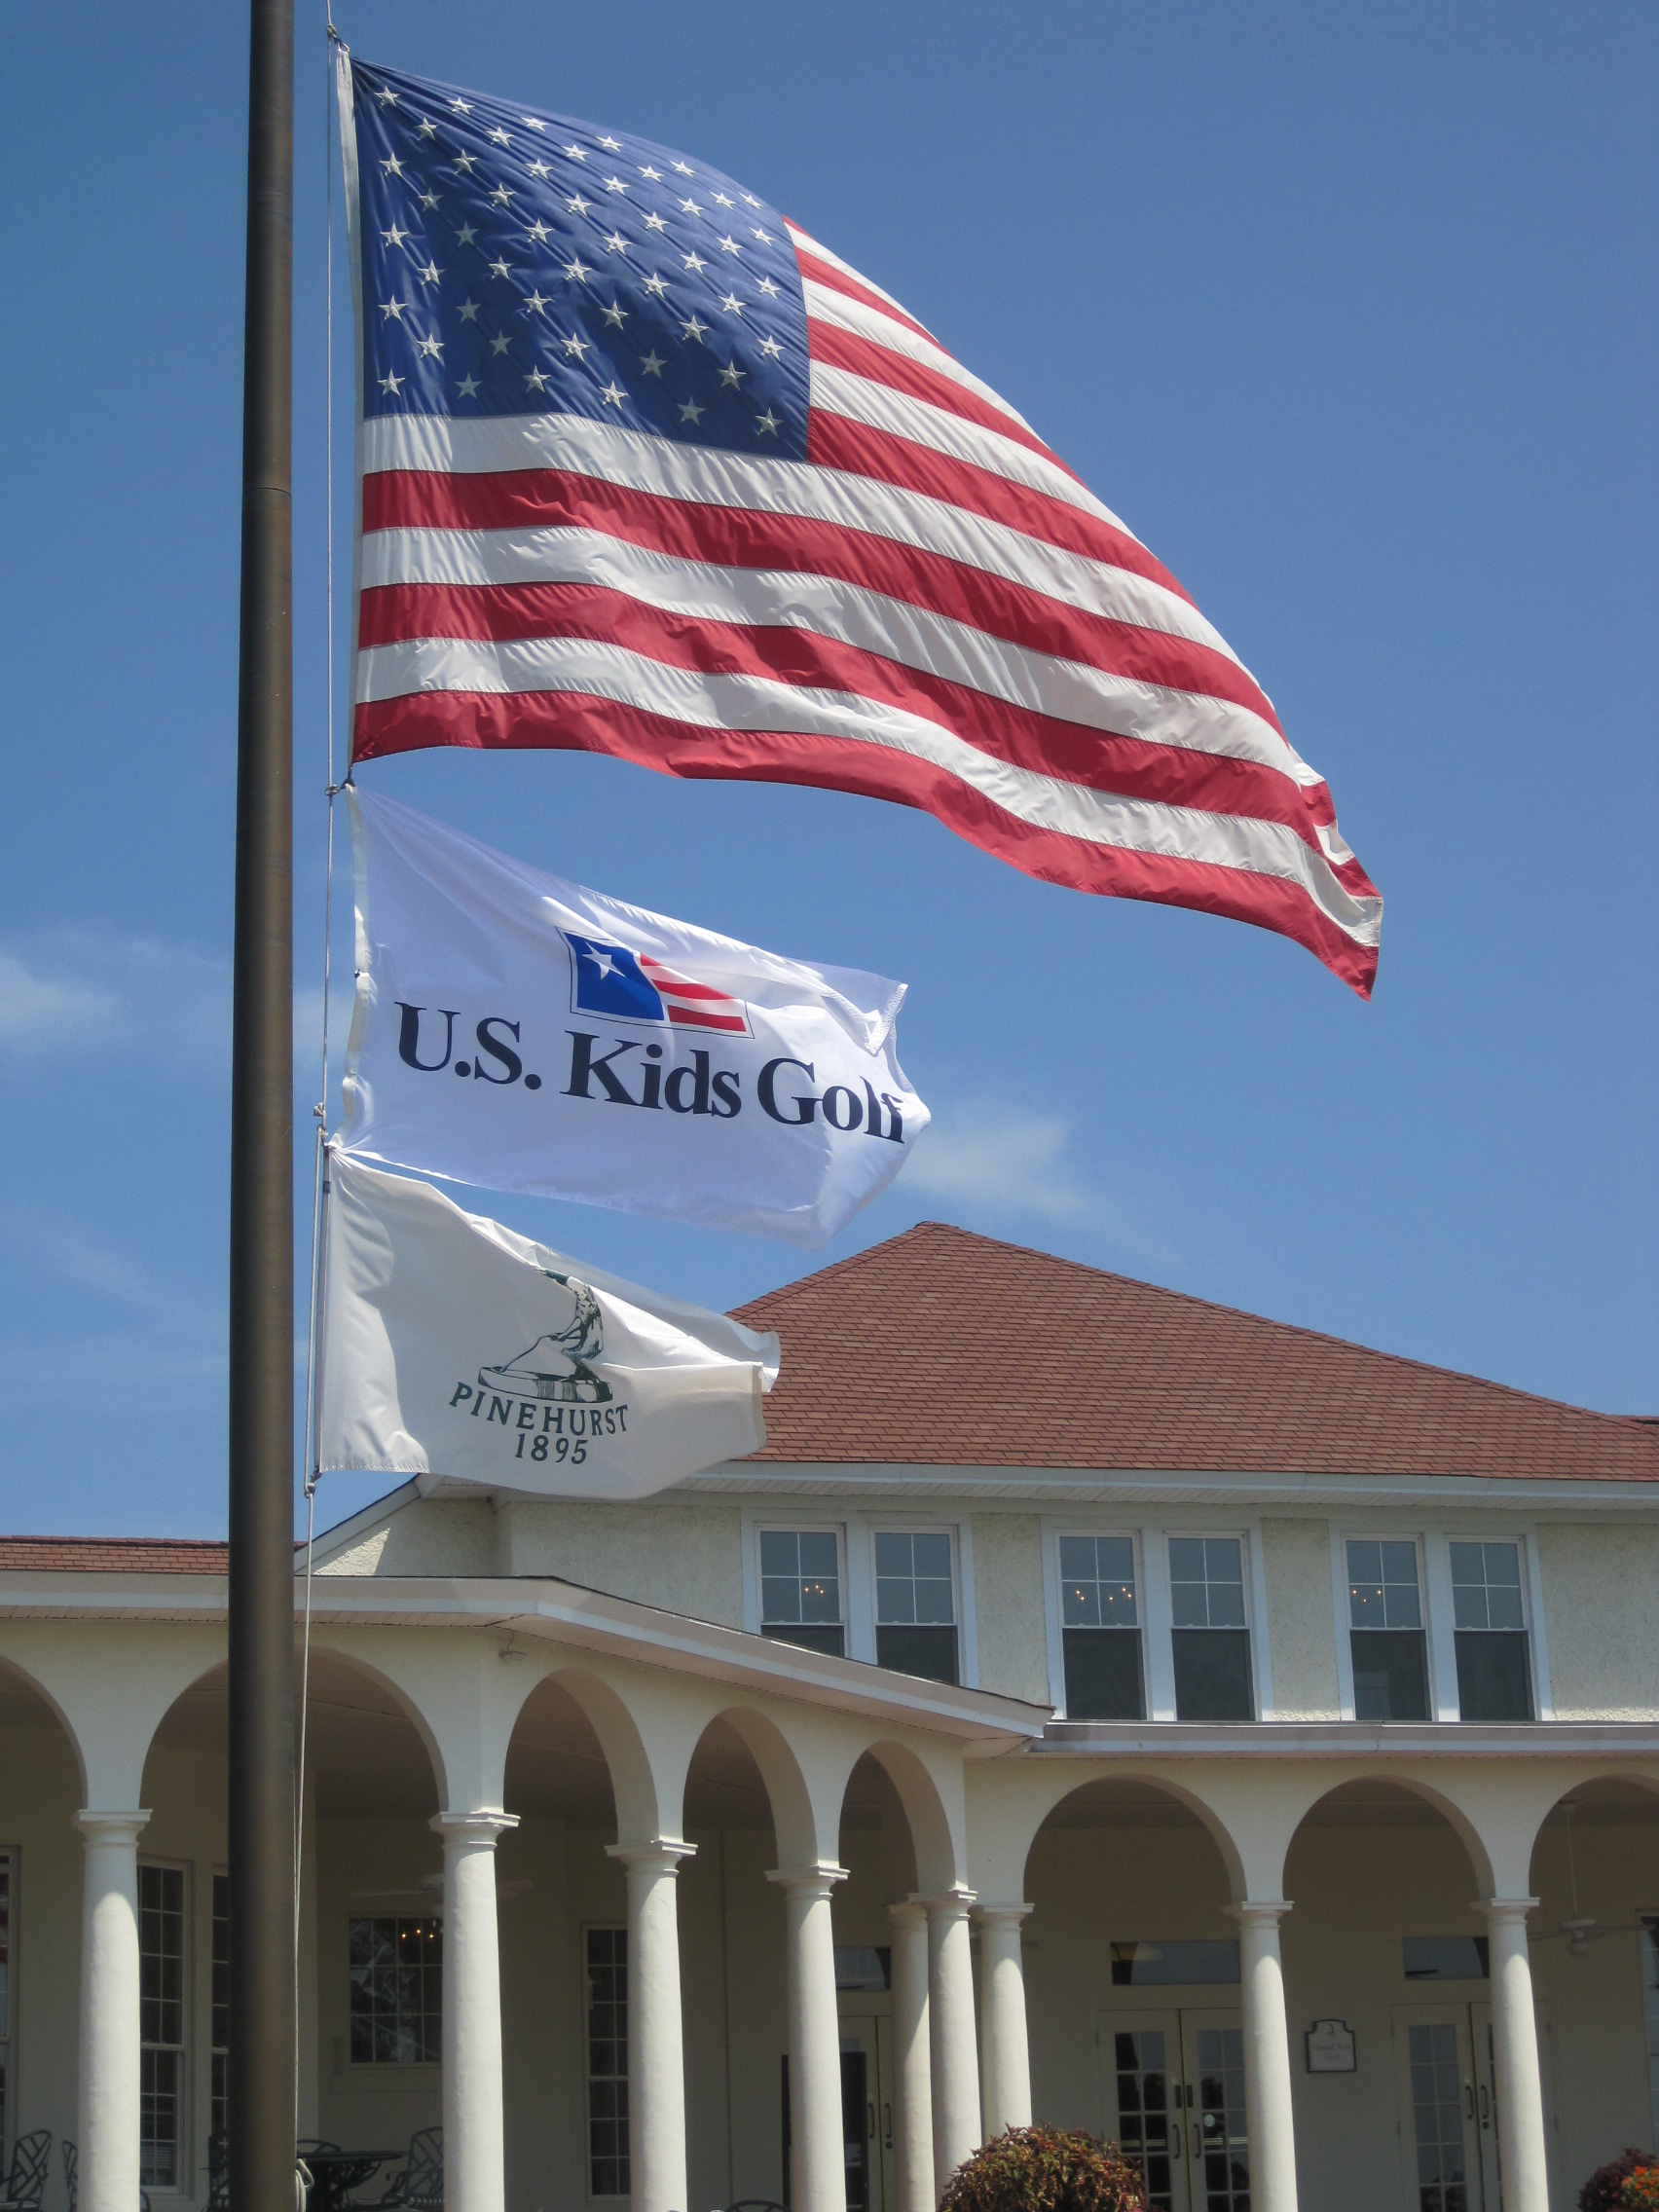 Pinehurst US Kids Flags